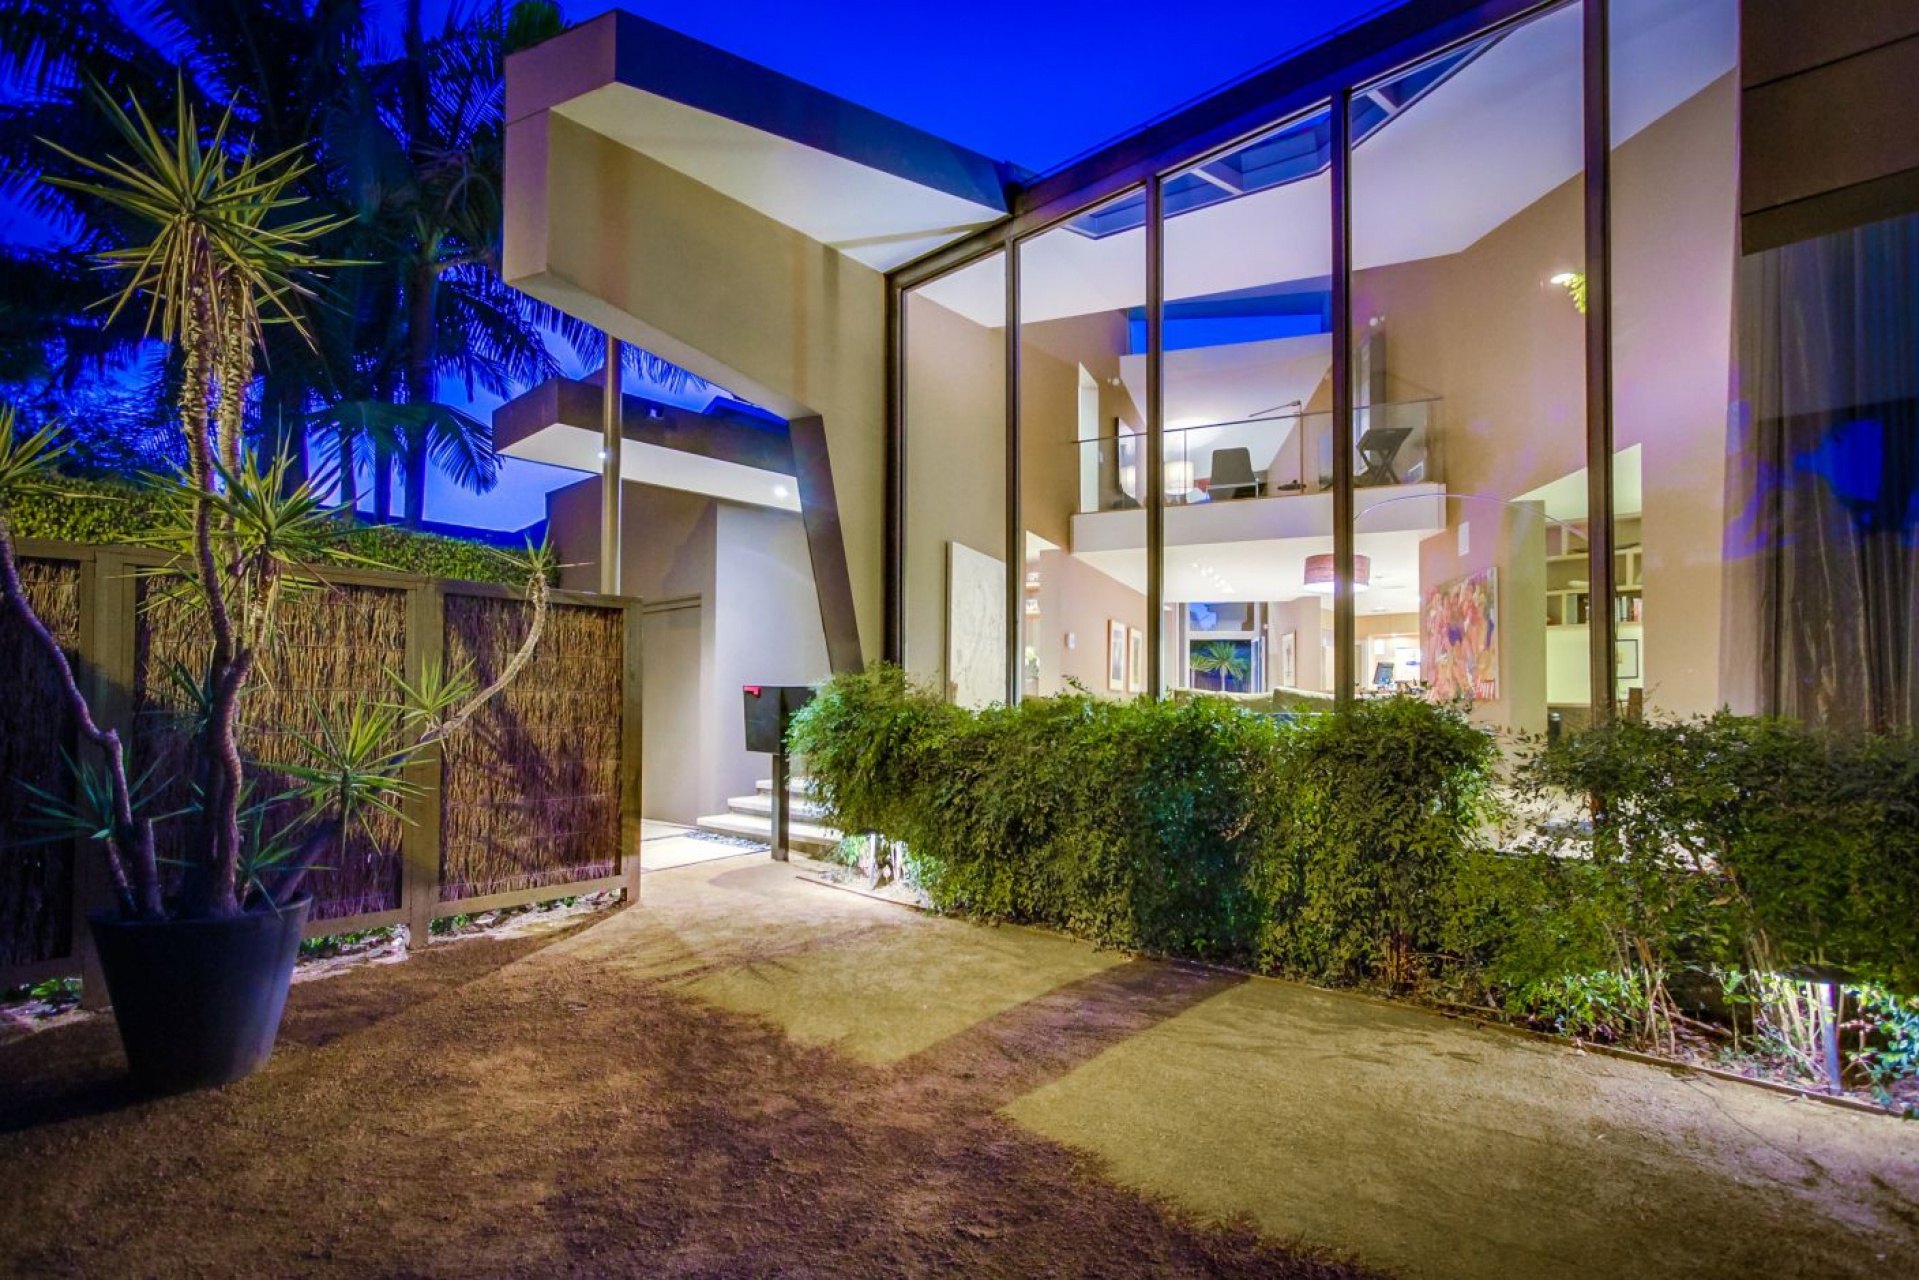 8743 Ashcroft    |   West Hollywood West Hollywood CA 90069 | Jonah Wilson